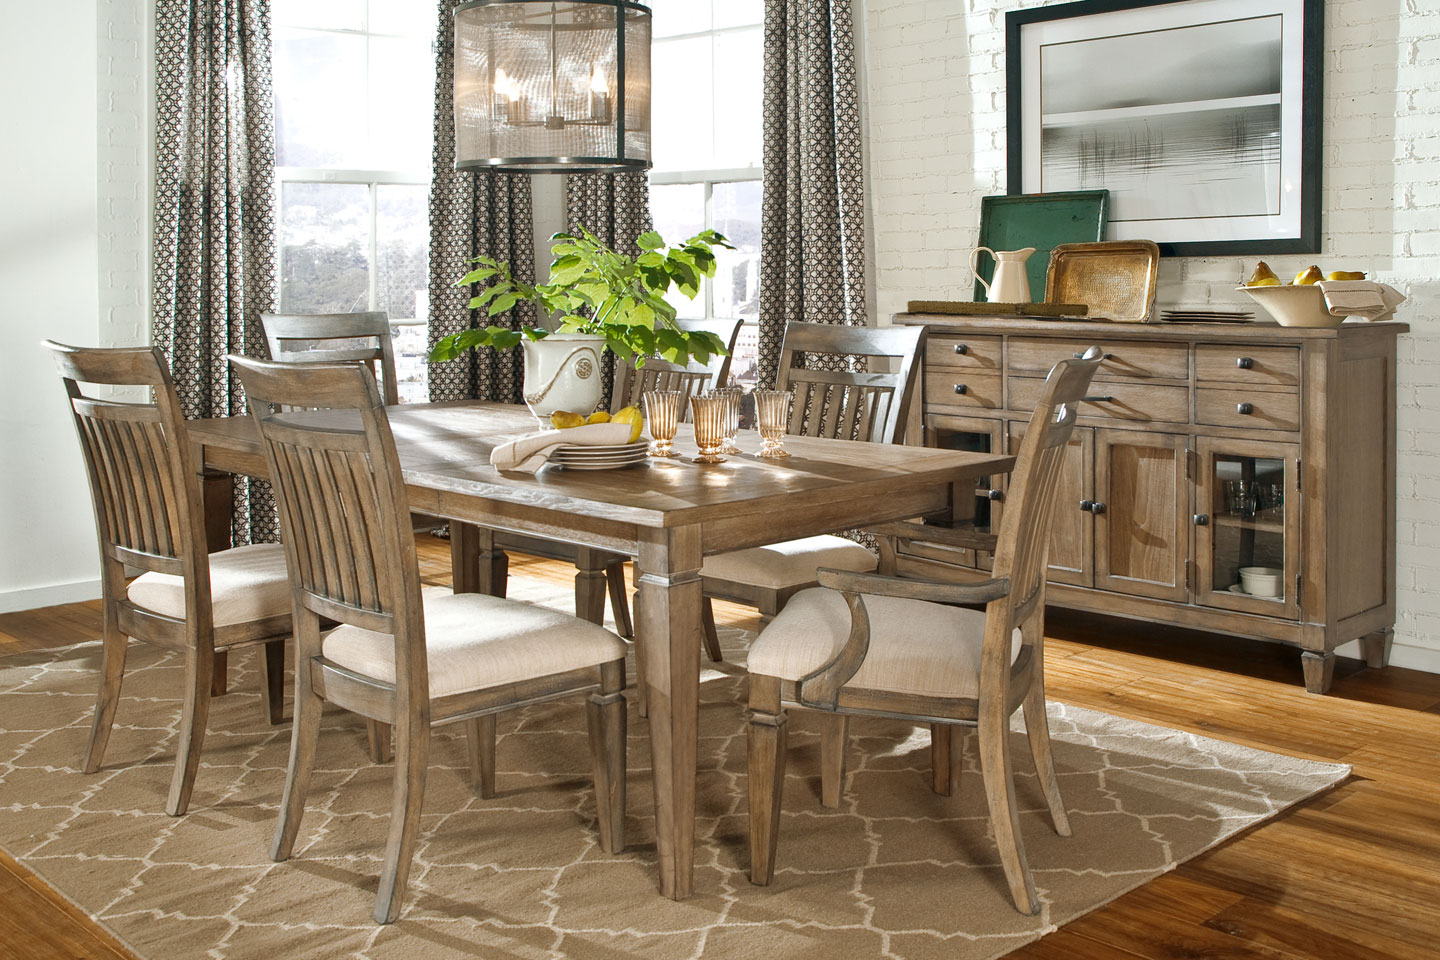 Gavin rustic dining room set dining furniture for Formal dining room furniture